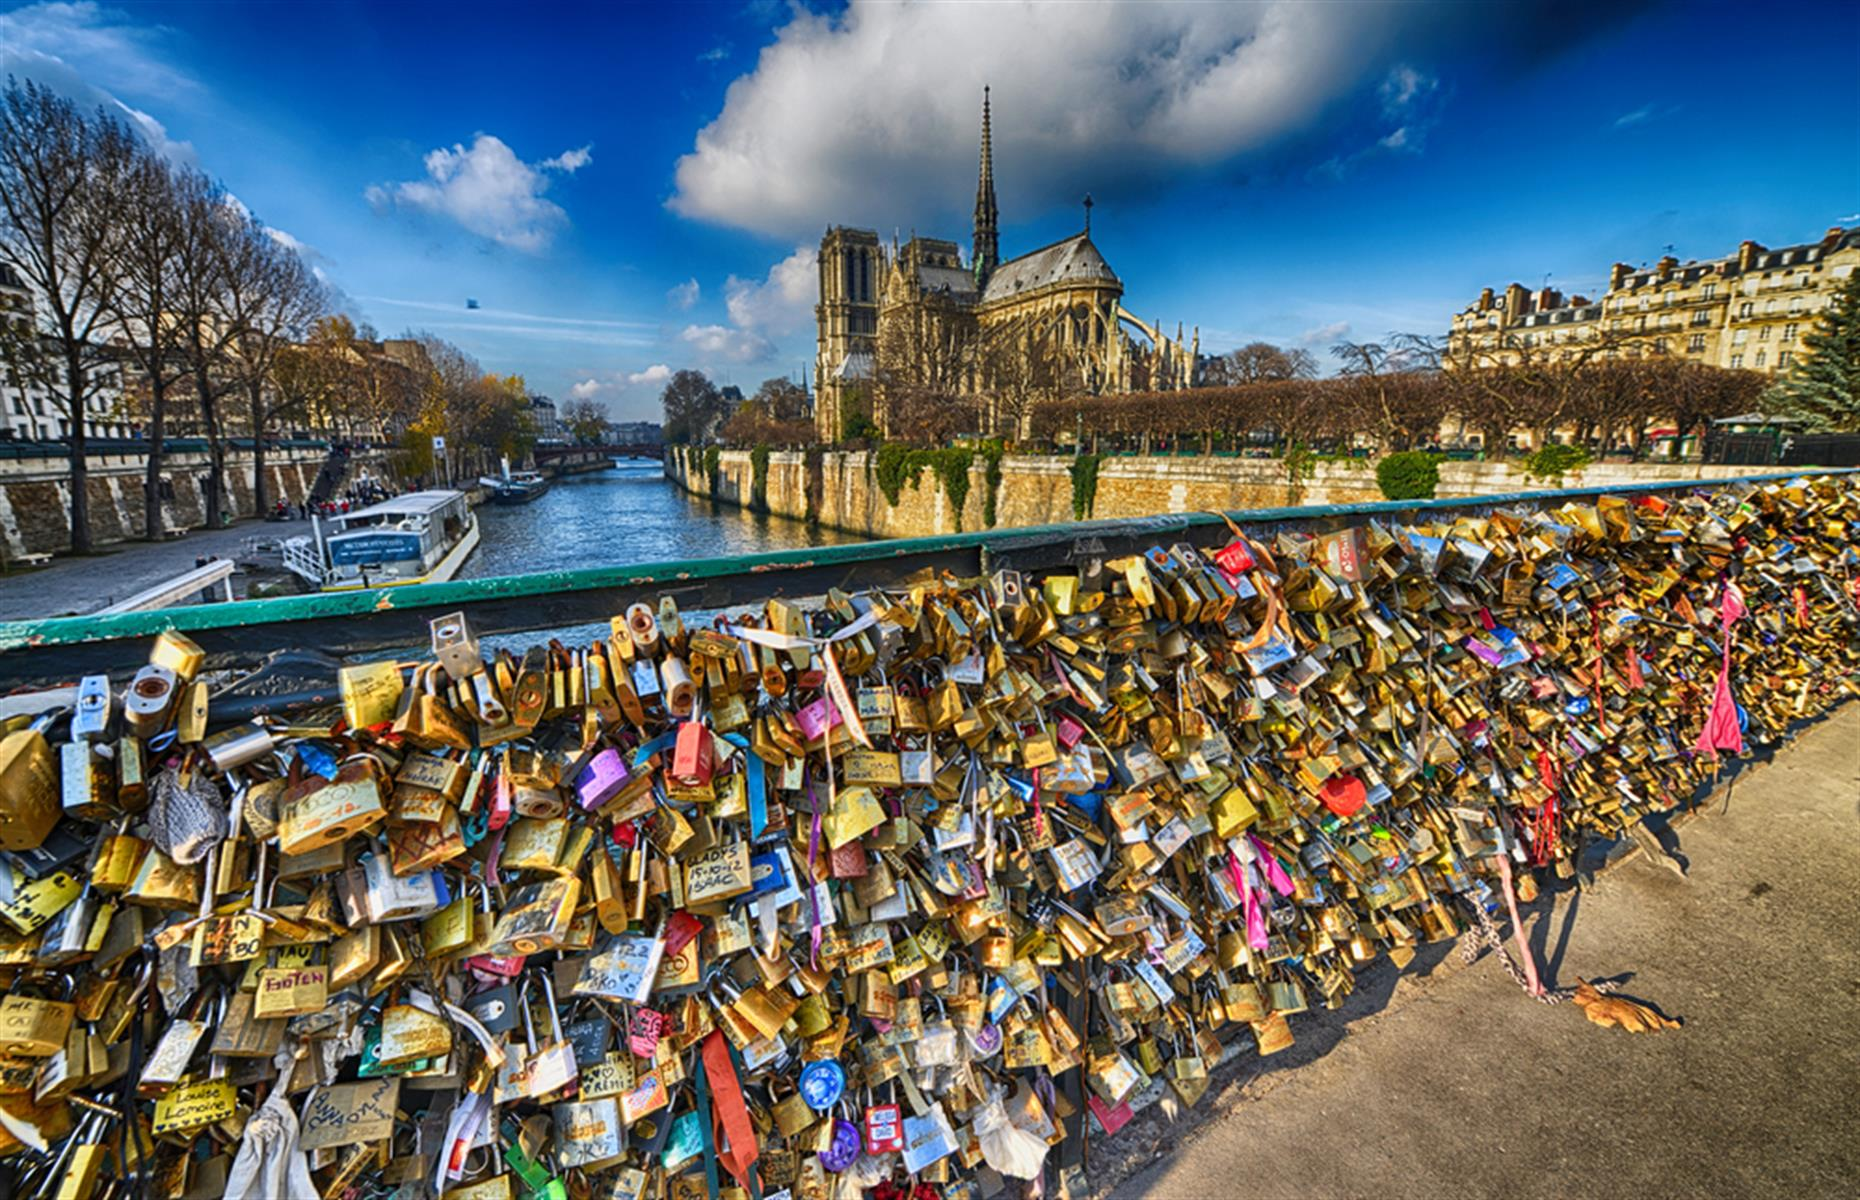 Slide 20 of 33: Hooking a 'love lock' with your initials on the Pont des Arts in Paris was the must-do thing for loved-up tourists. Millions of them were locked onto the bridge and it became so heavy that part of the railings collapsed.